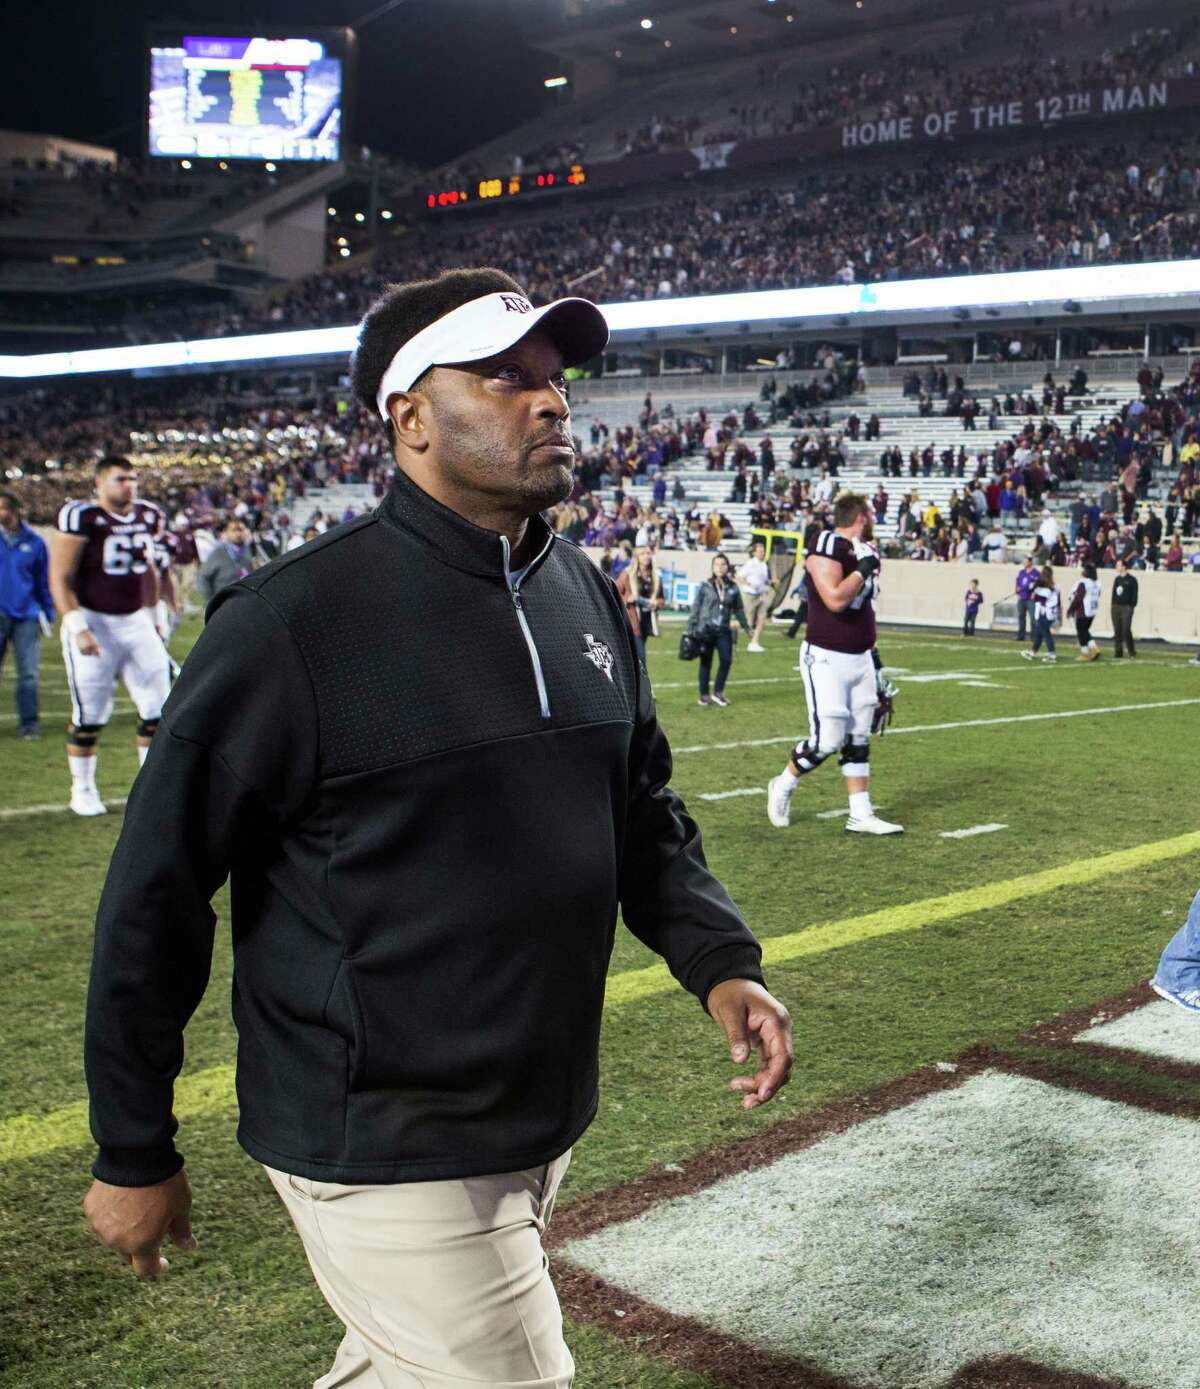 Texas A&M head coach Kevin Sumlin walks off the field after a 54-39 loss to LSU in an NCAA football game at Kyle Field on Thursday, Nov. 24, 2016, in Houston.